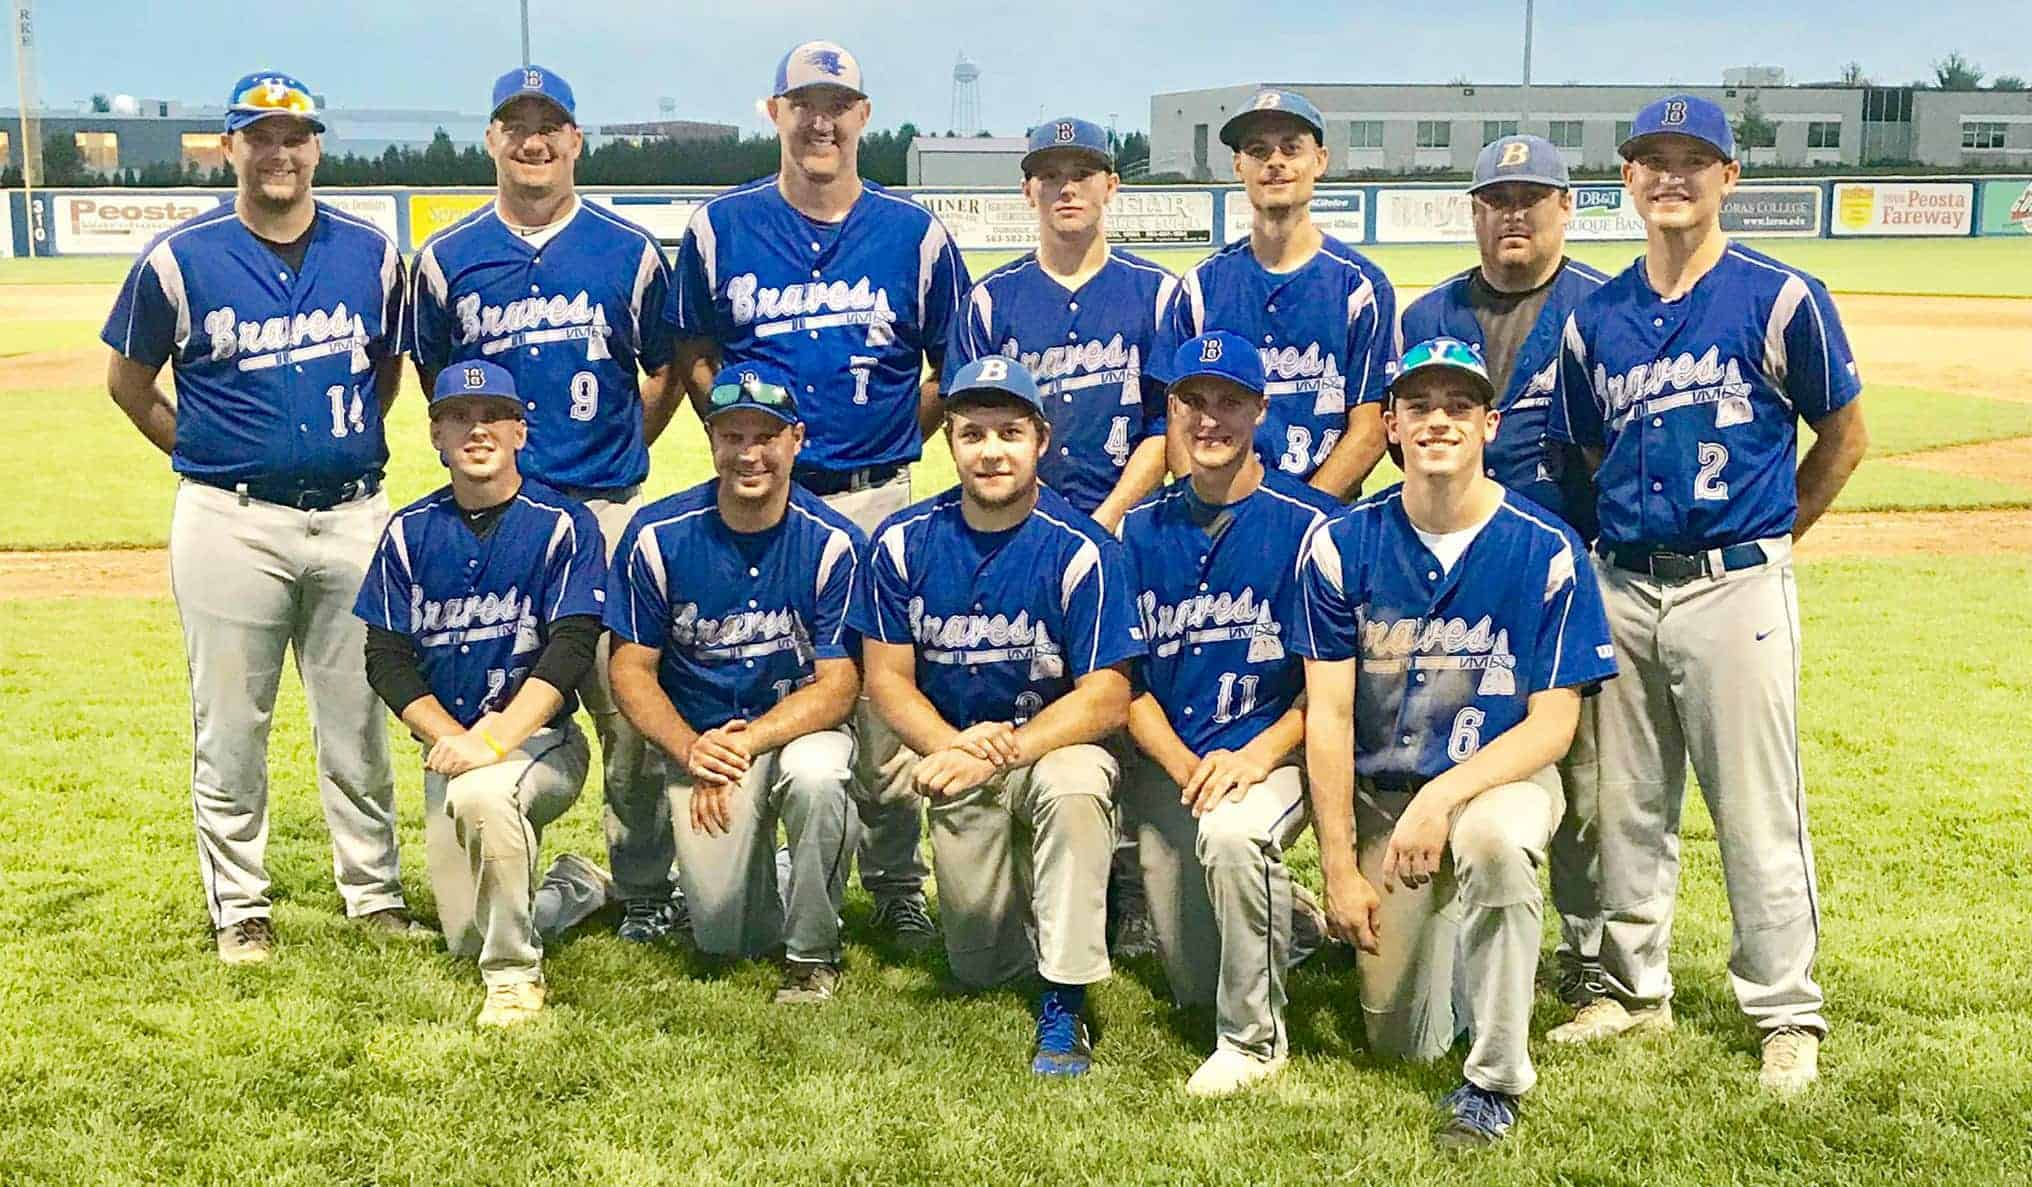 Bellevue Braves team photo posted August 2018 (via Facebook)